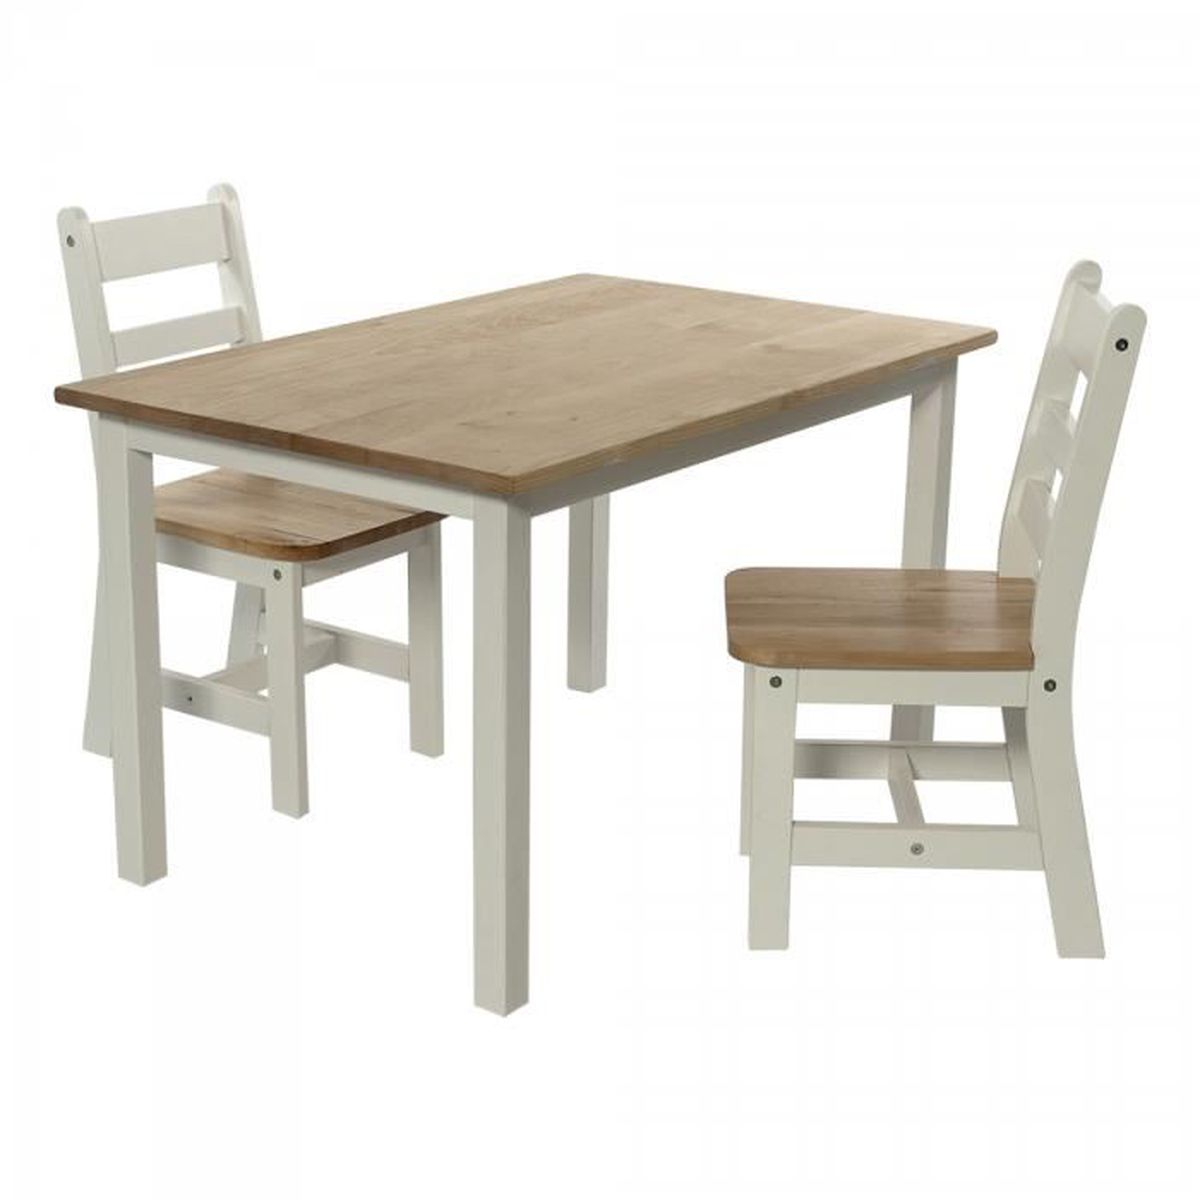 Ensemble table et chaises enfant conceptions de maison for Ensemble table et chaise